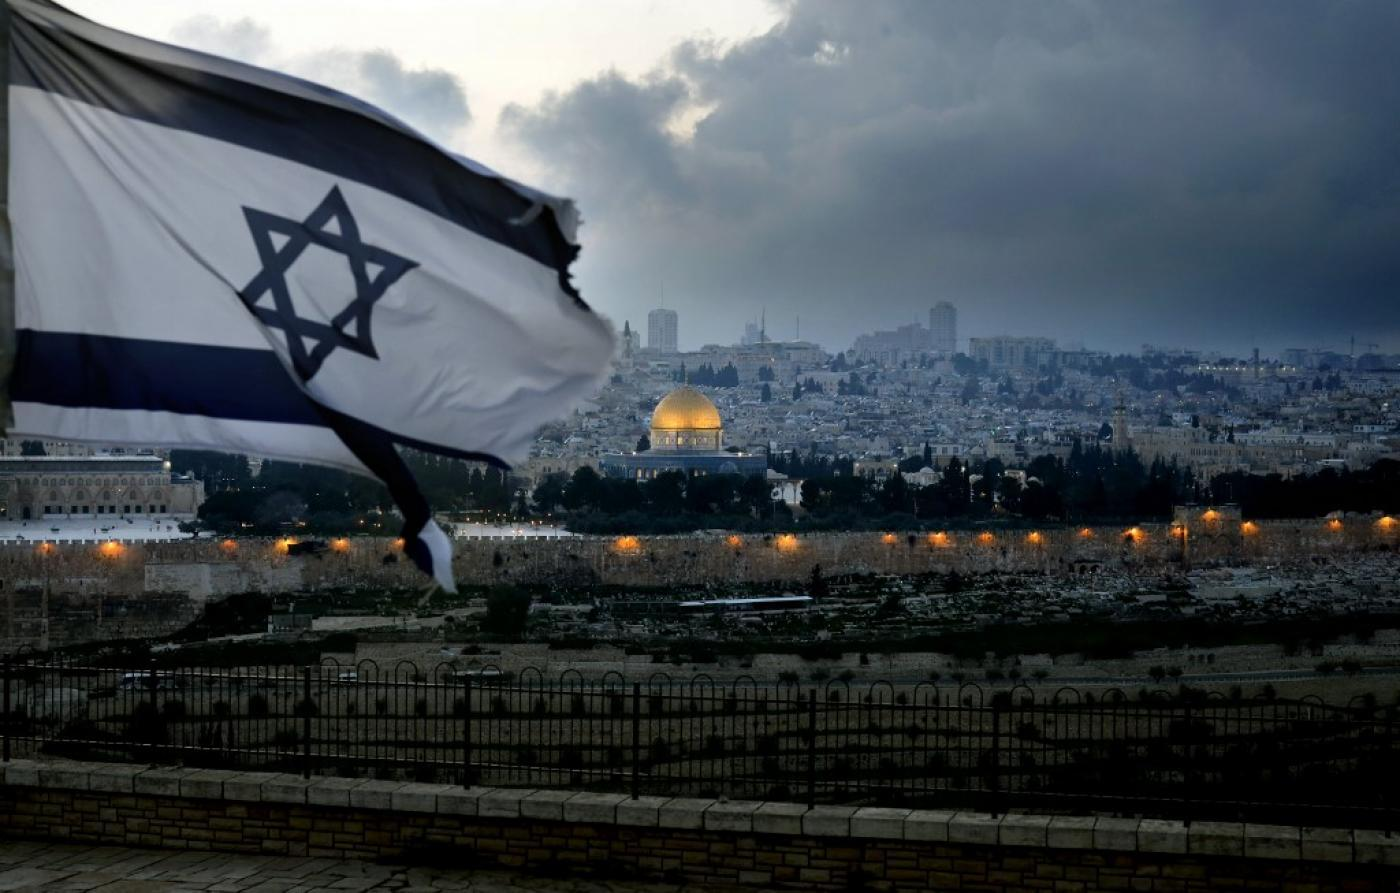 Israeli flag with Old City of Jerusalem in background